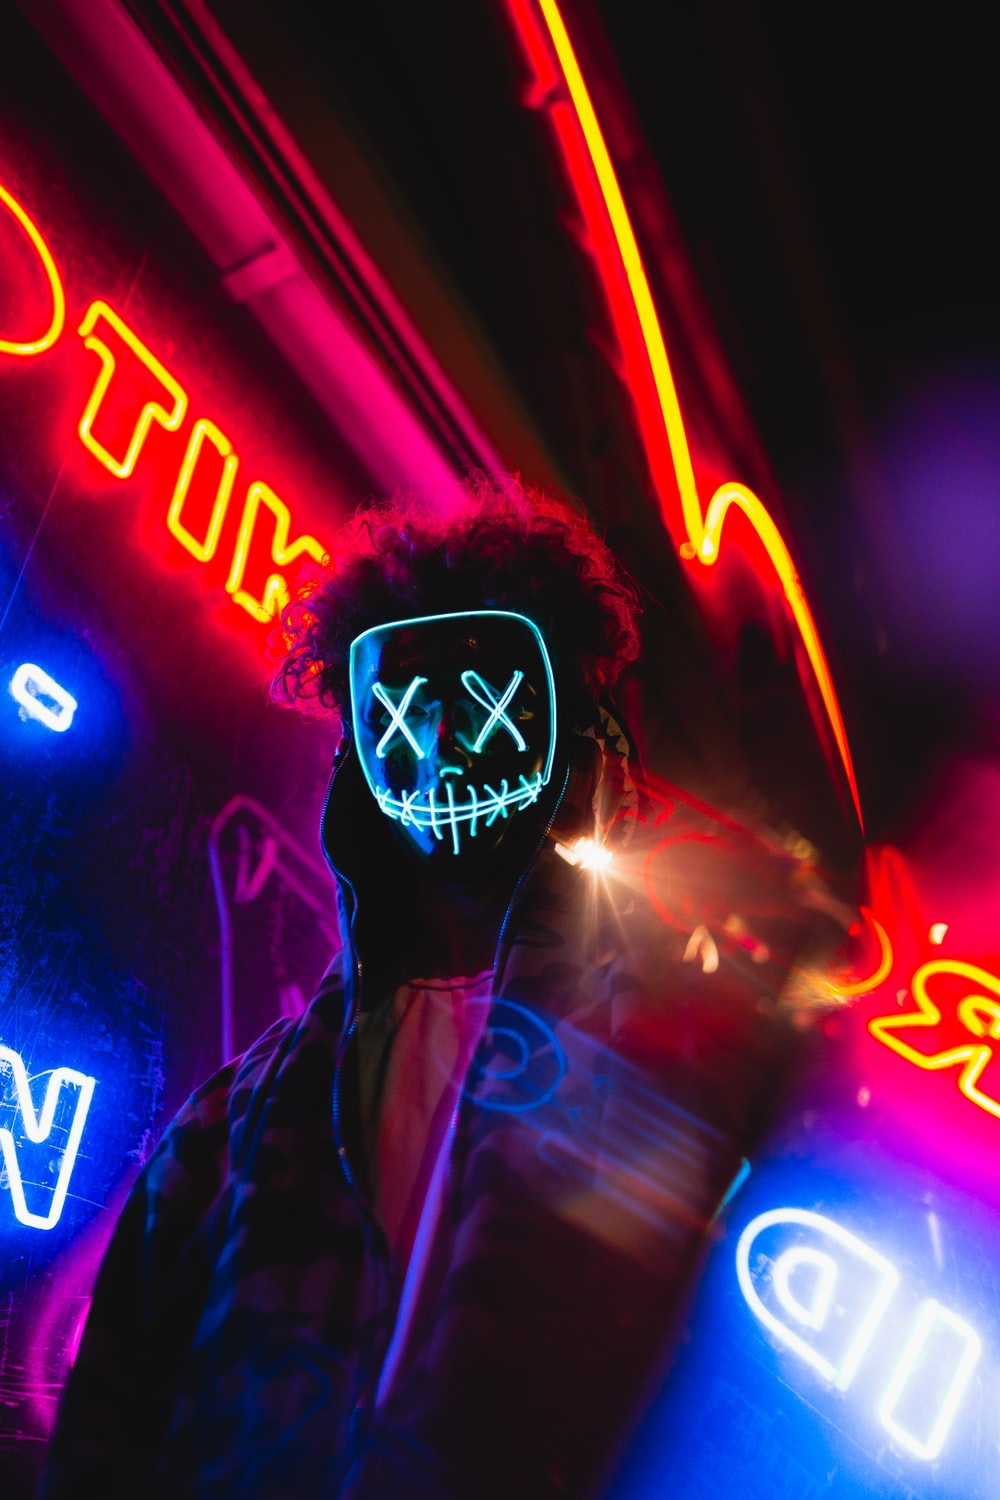 500 Neon Mask Pictures Download Free Images On Unsplash